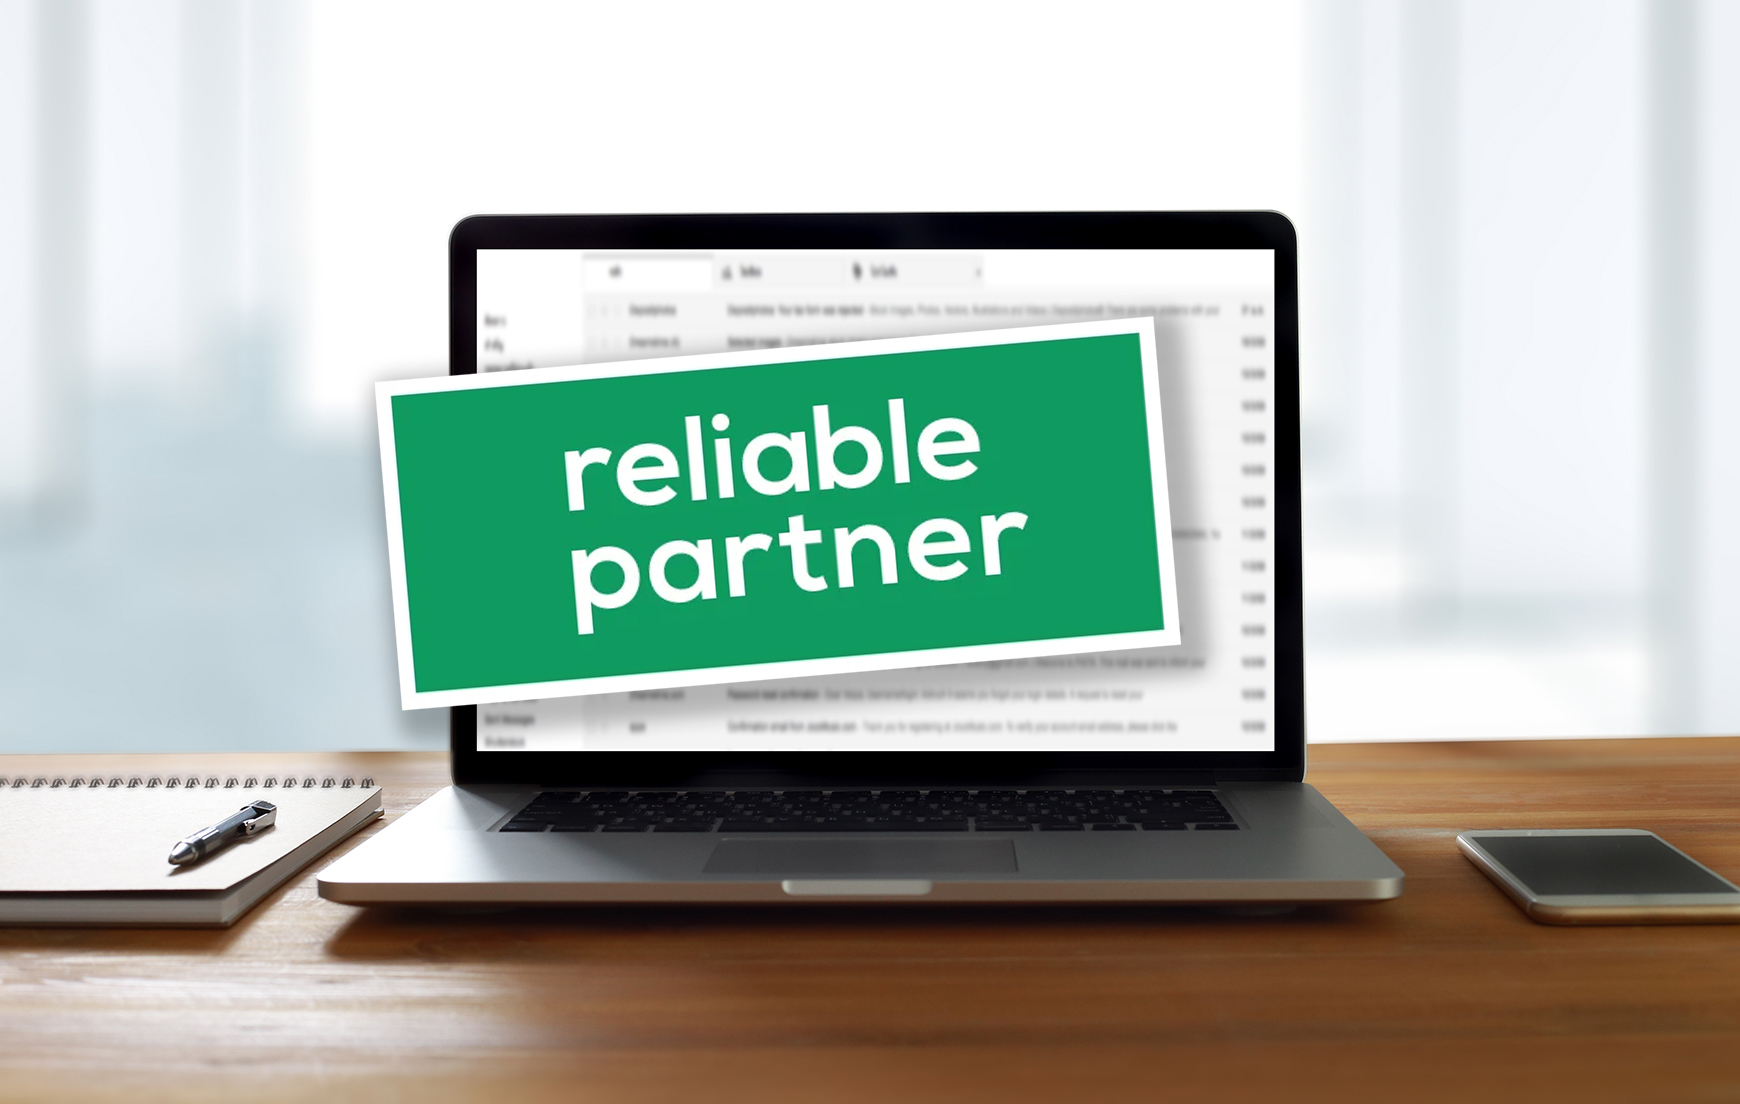 Reliable_Partner_logo_computer